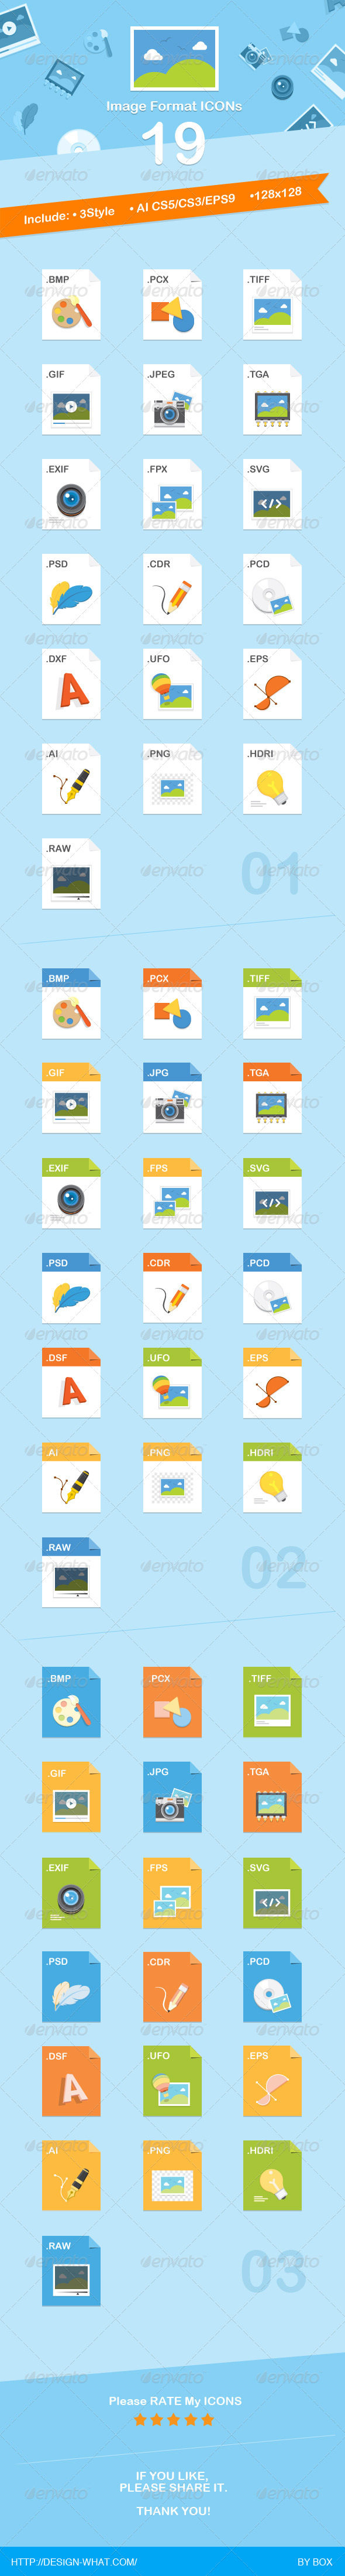 19 Image Format Icons - Web Icons